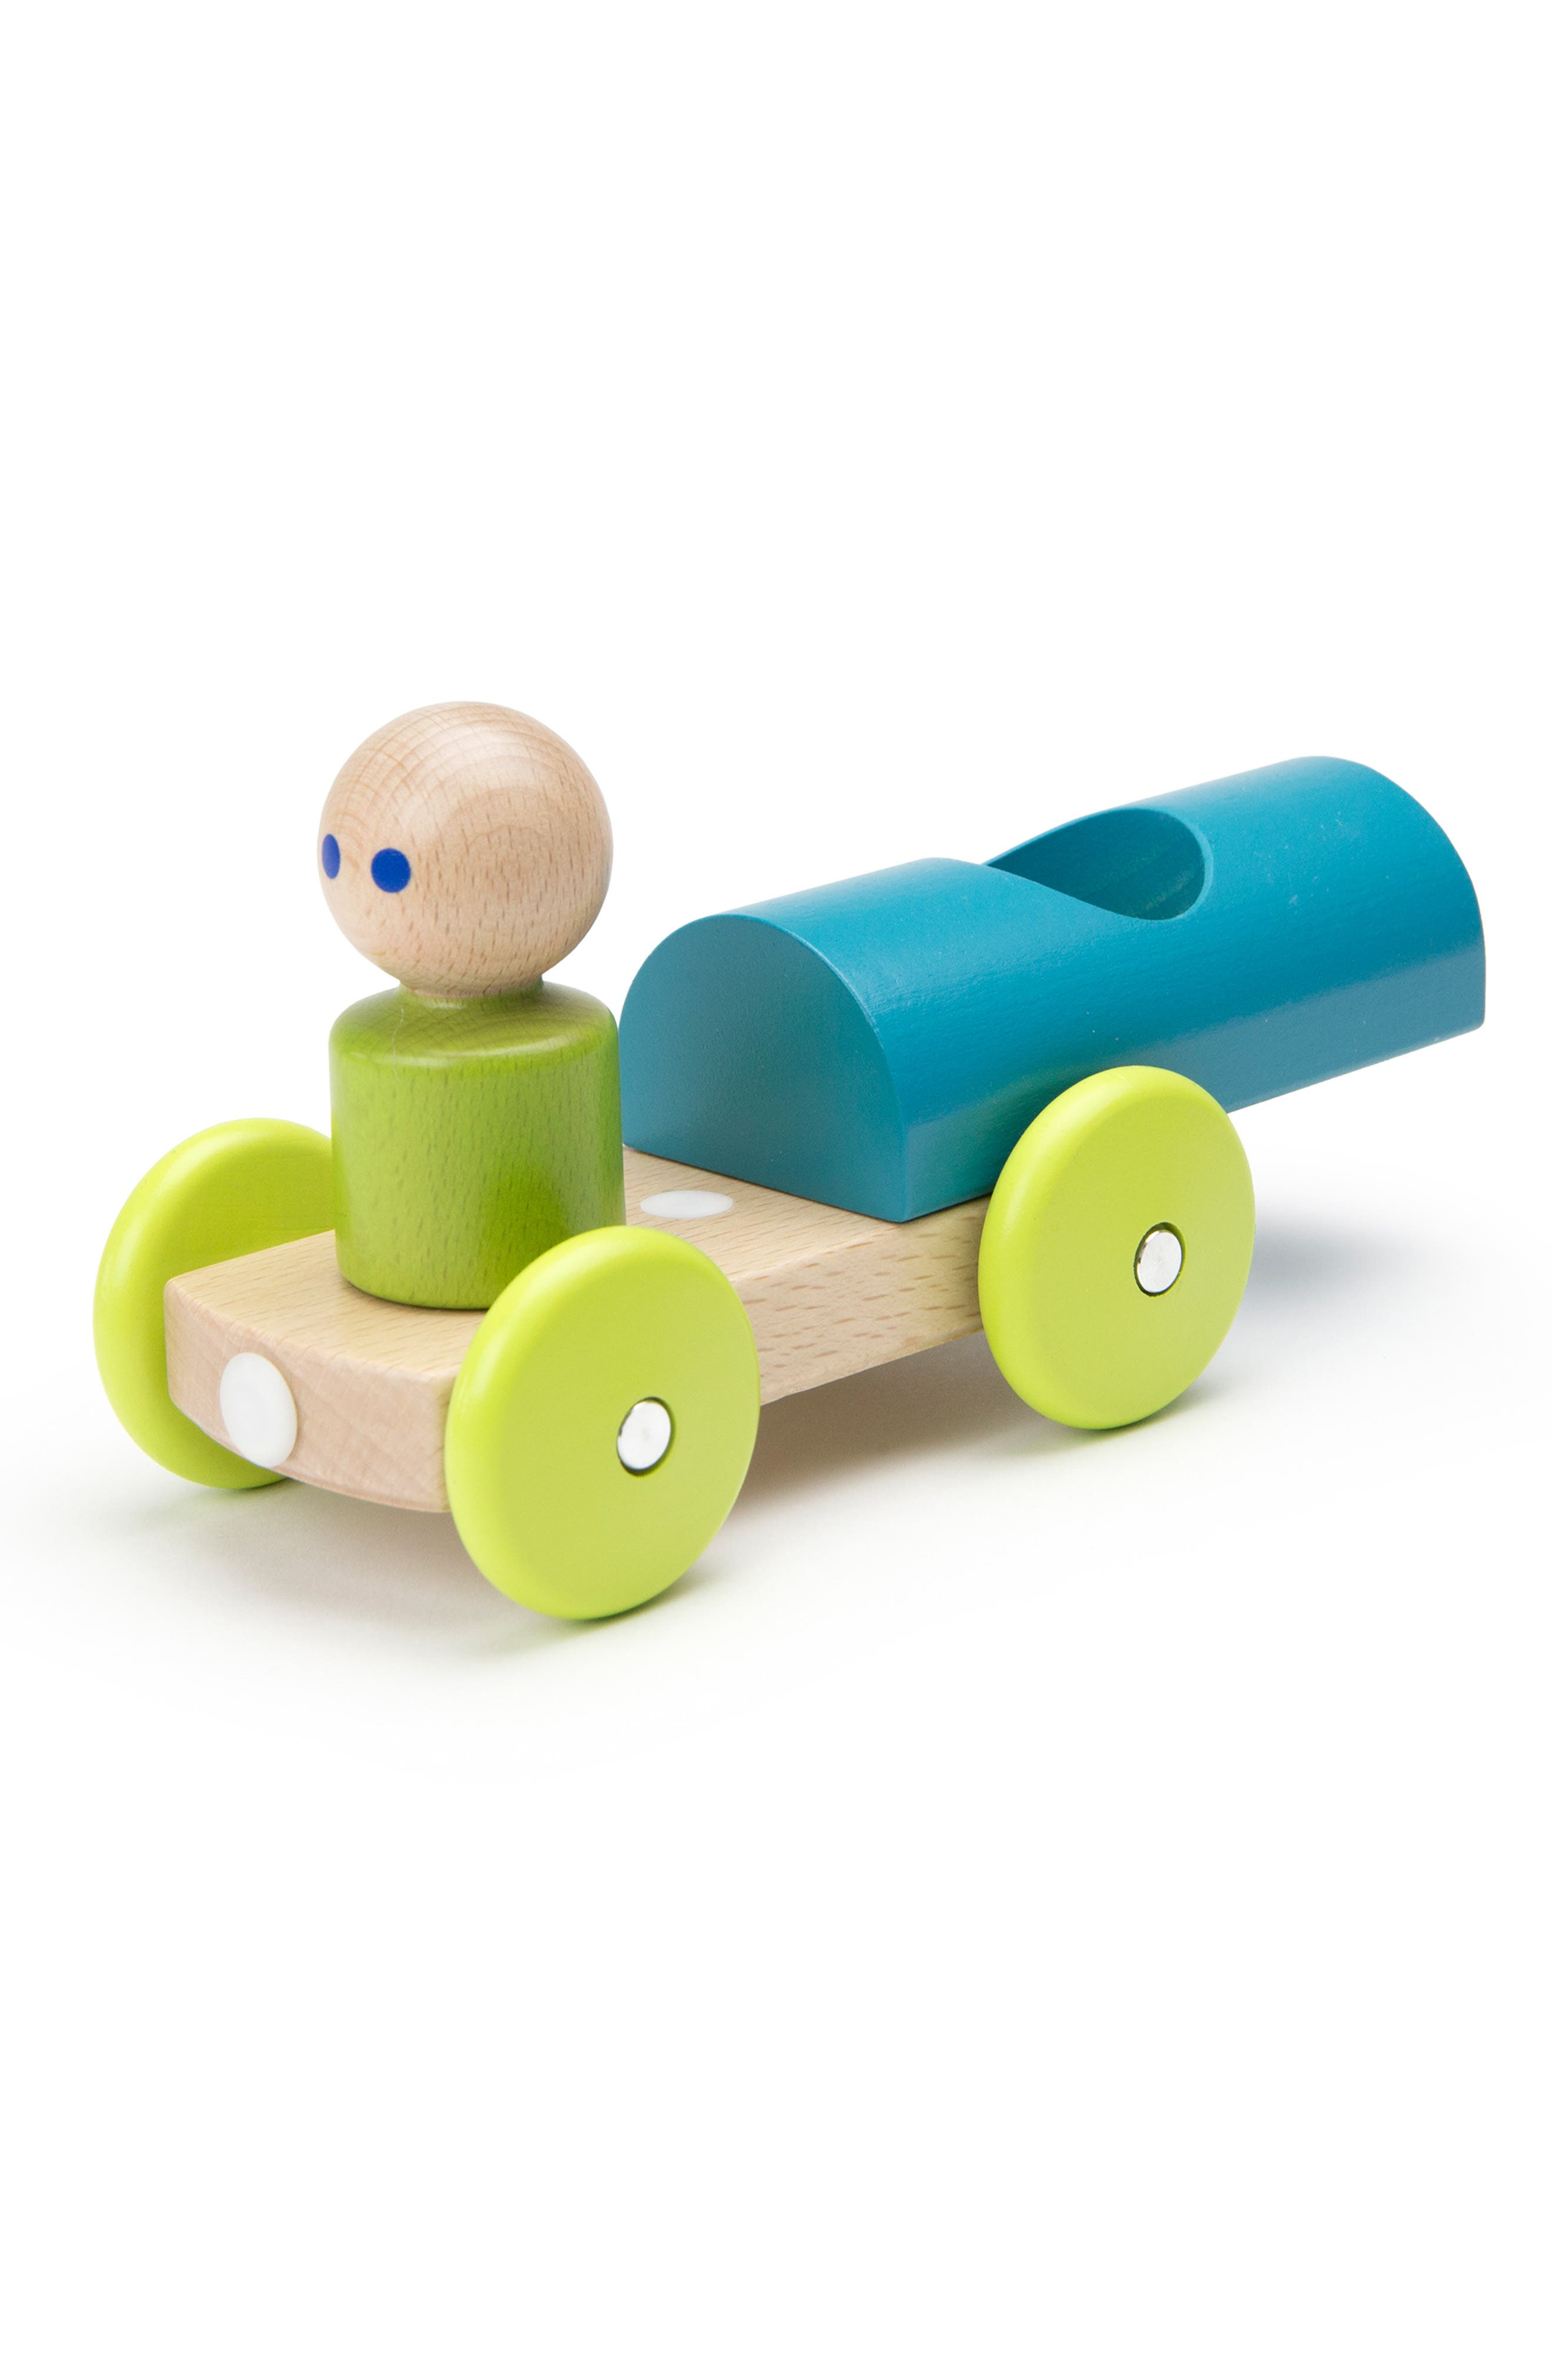 Half Pipe Magnetic Racer Toy,                             Alternate thumbnail 6, color,                             960